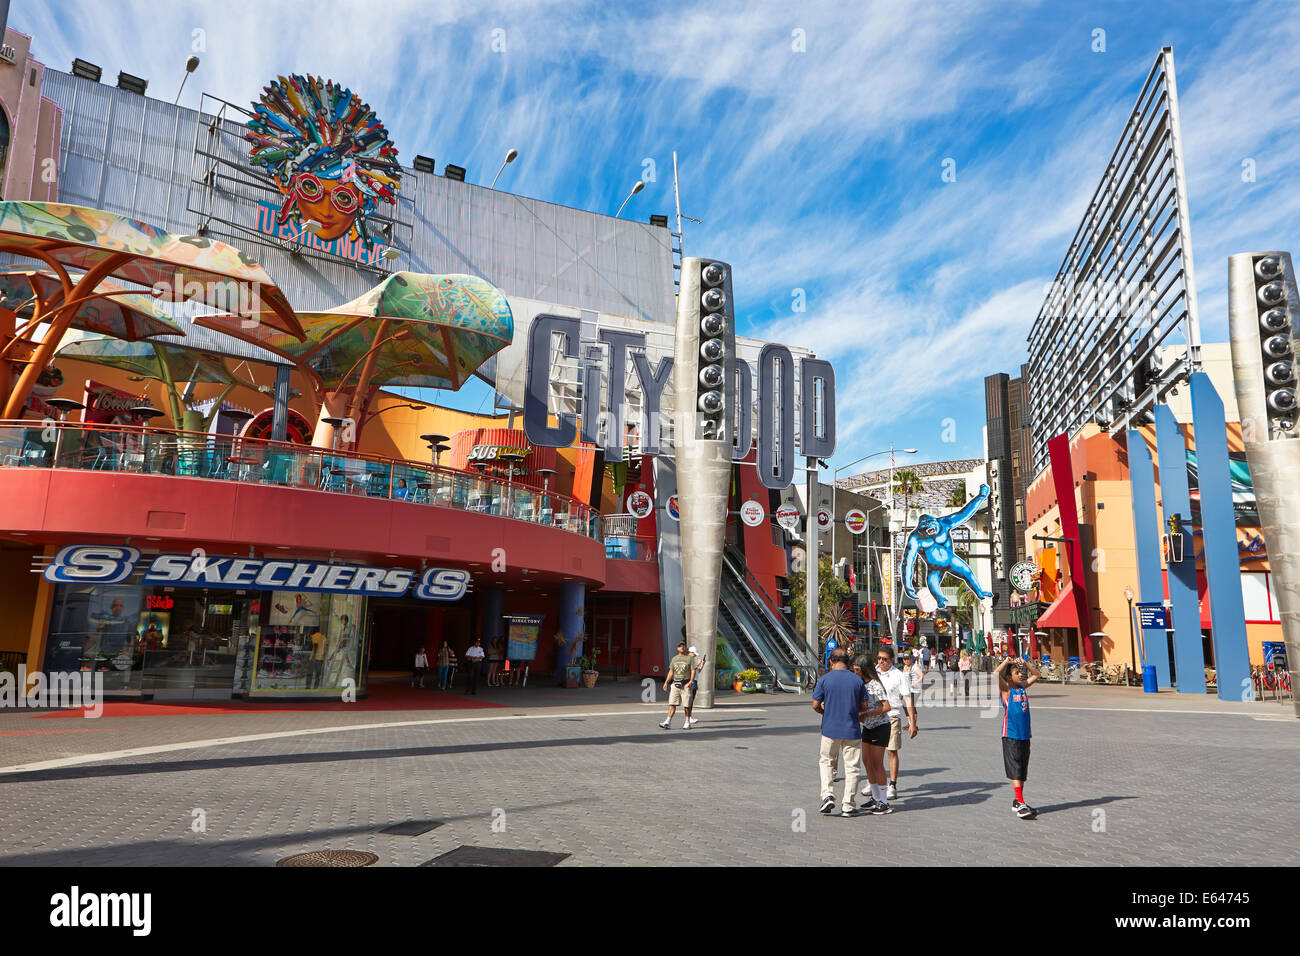 Universal City street scene. Hollywood, Los Angeles, Kalifornien, USA. Stockbild